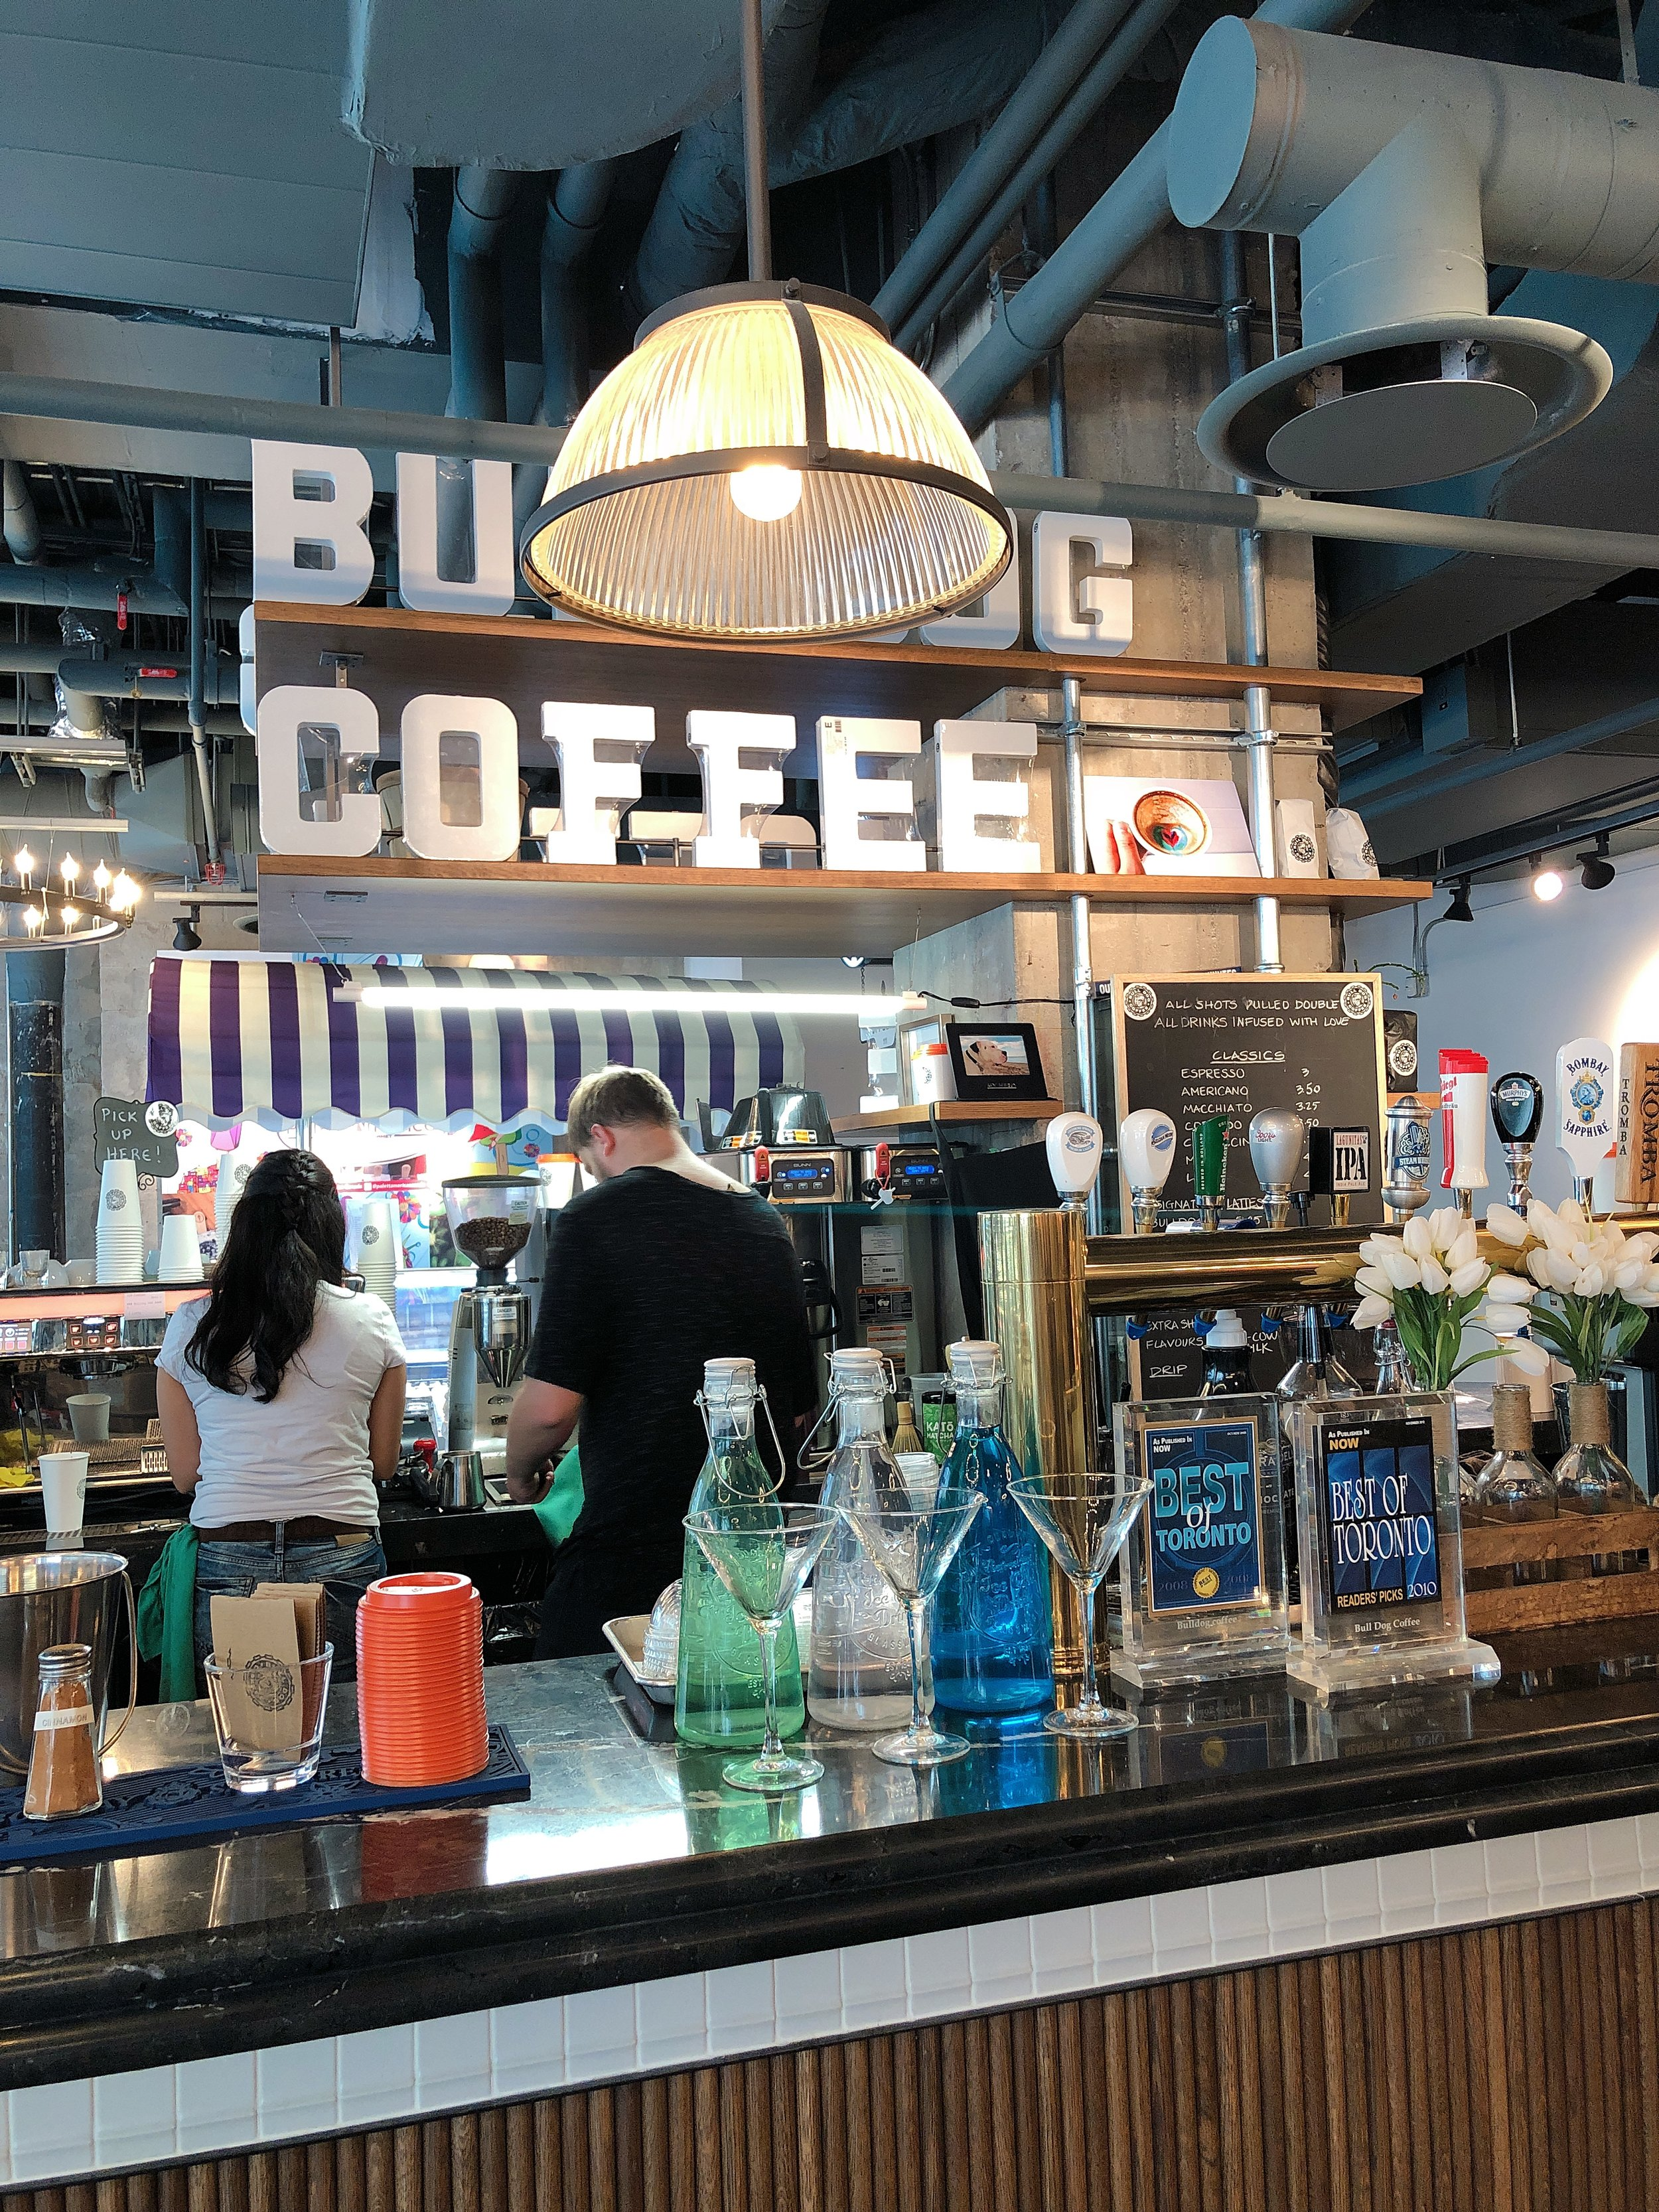 Bulldog Coffee at Assembly Chef's Hall